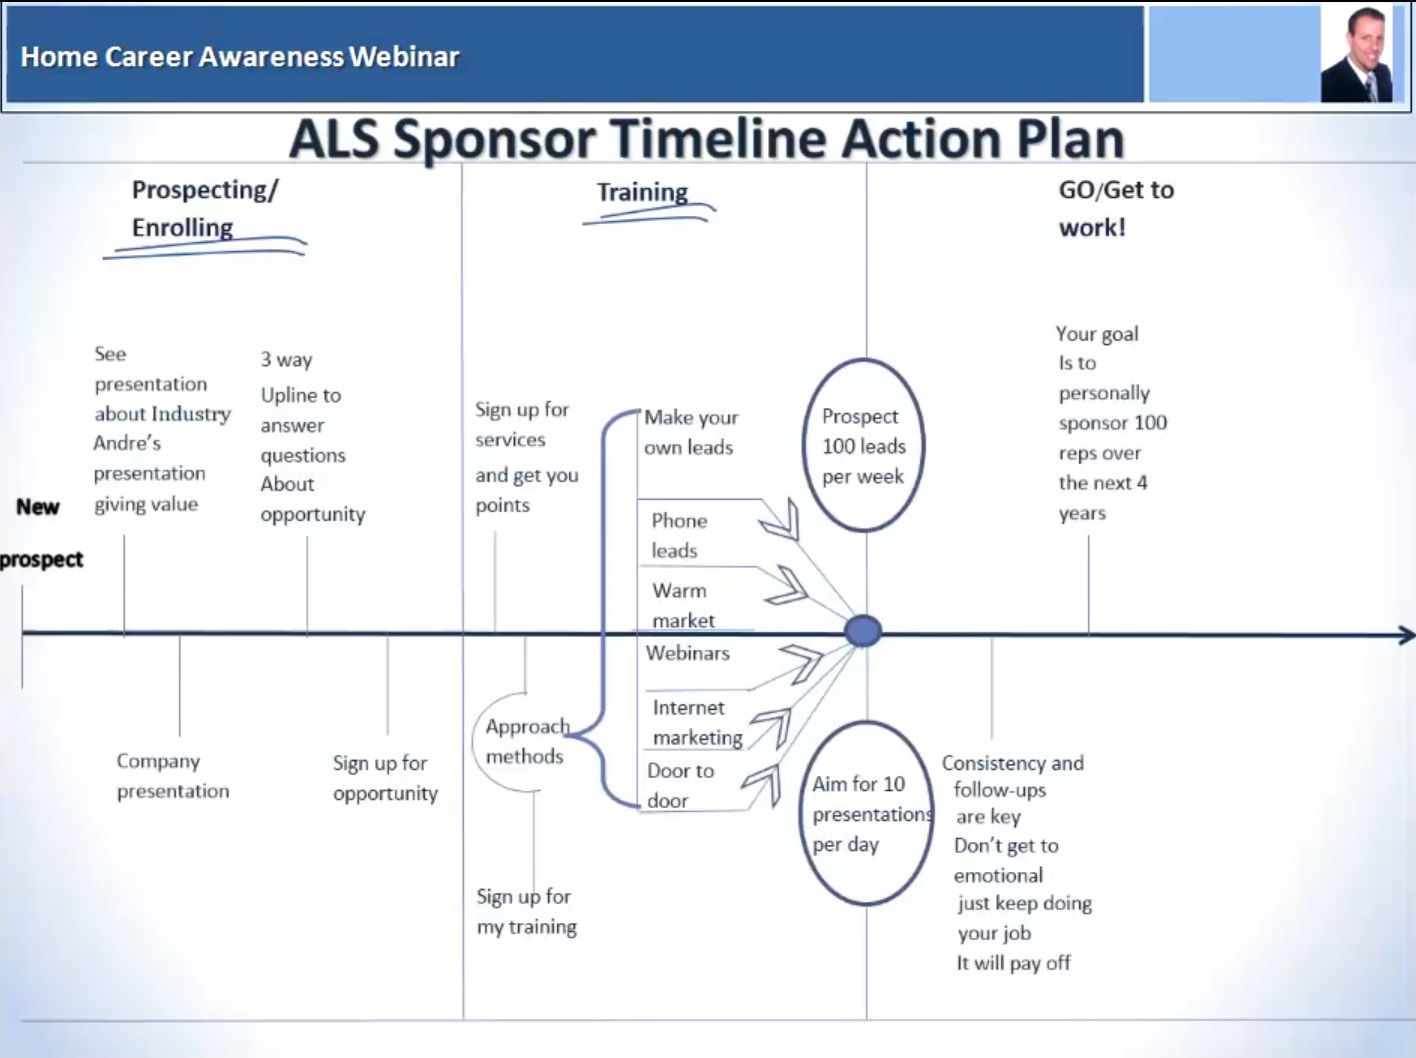 ALS Sponsor Timeline Action Plan by Andre Givogue